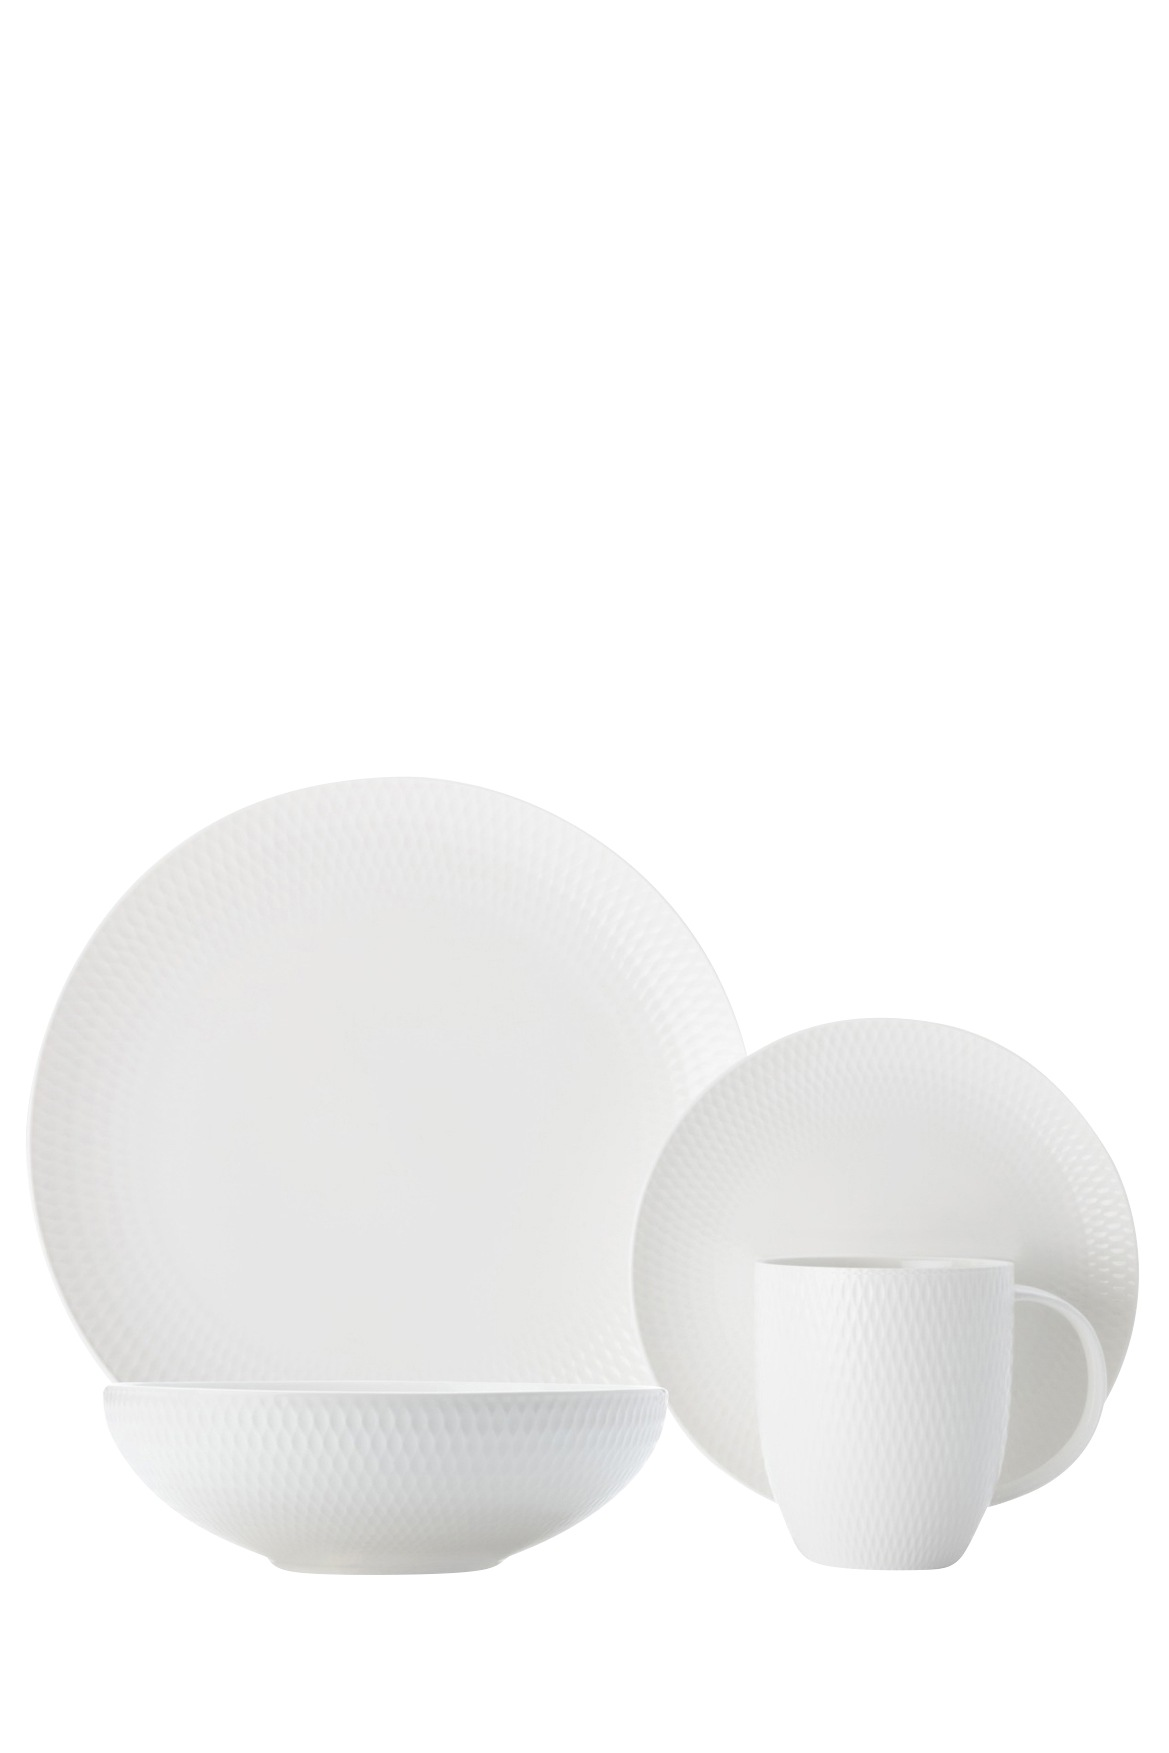 Maxwell u0026 Williams | White Basics Diamonds 16 Piece Dinner Set Gift Boxed | Myer Online  sc 1 st  Myer : maxwell williams dinnerware - pezcame.com